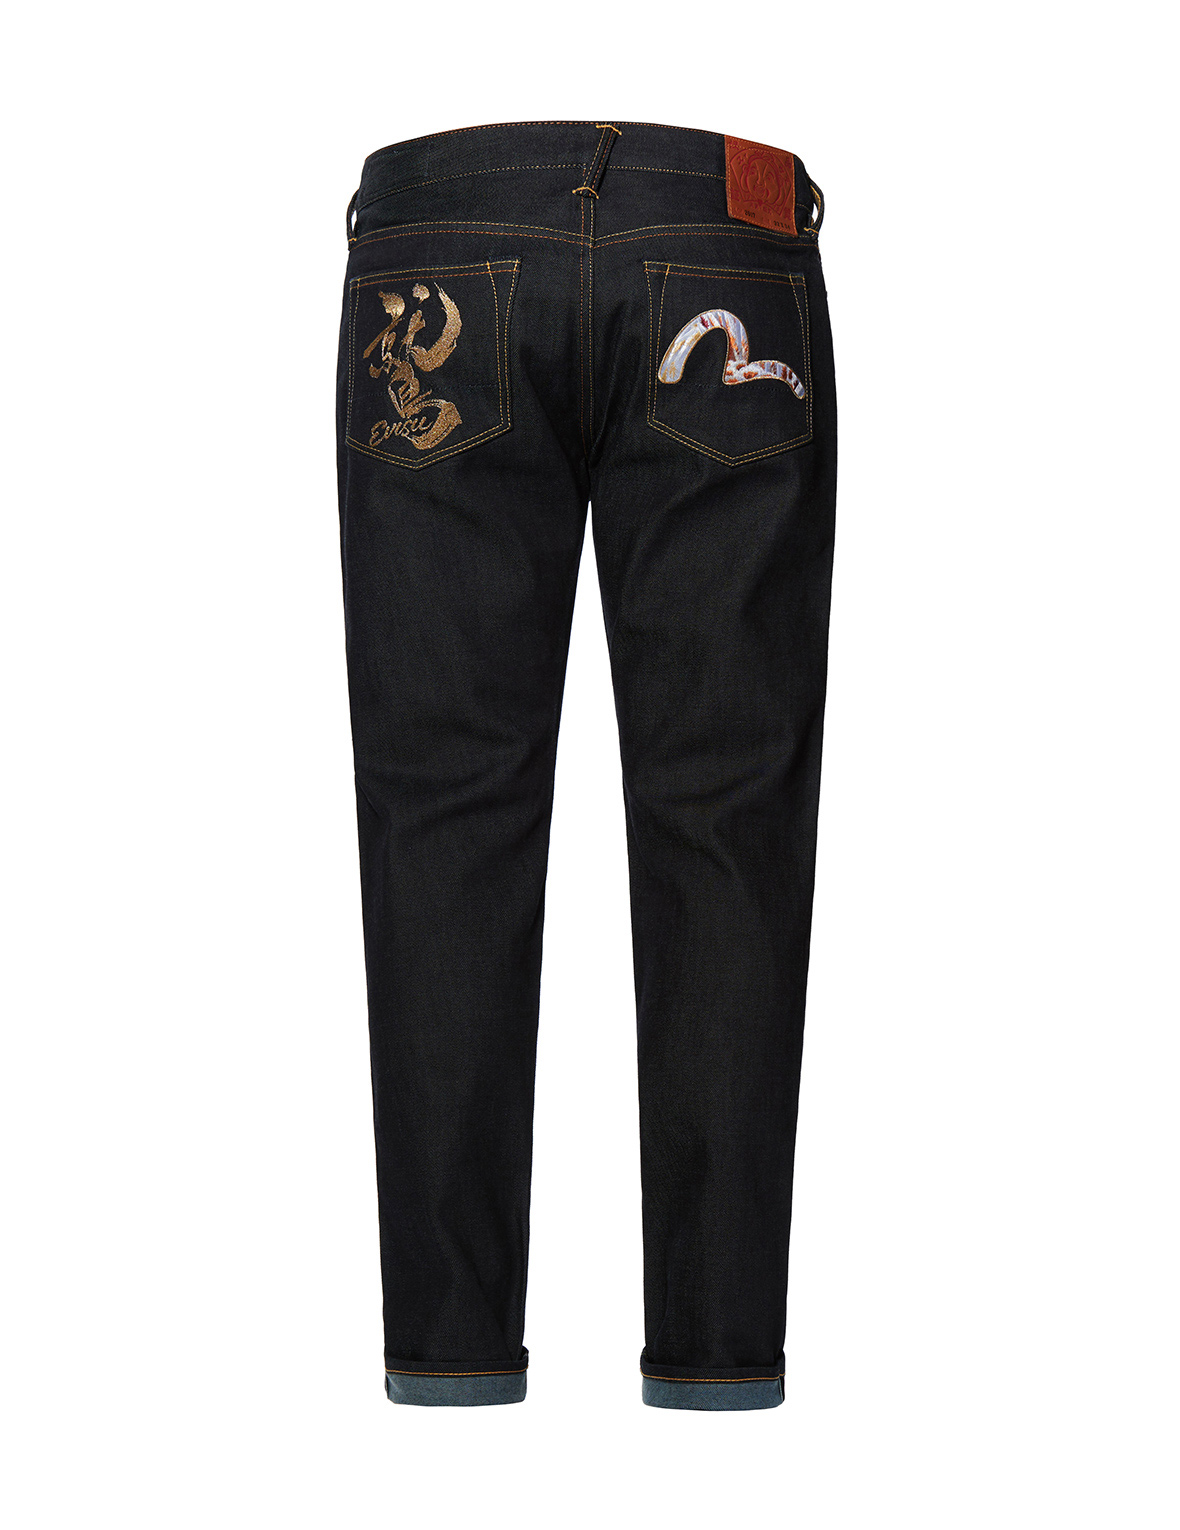 Taka Kanji and Seagull Embroidered Carrot Fit Jeans 2017